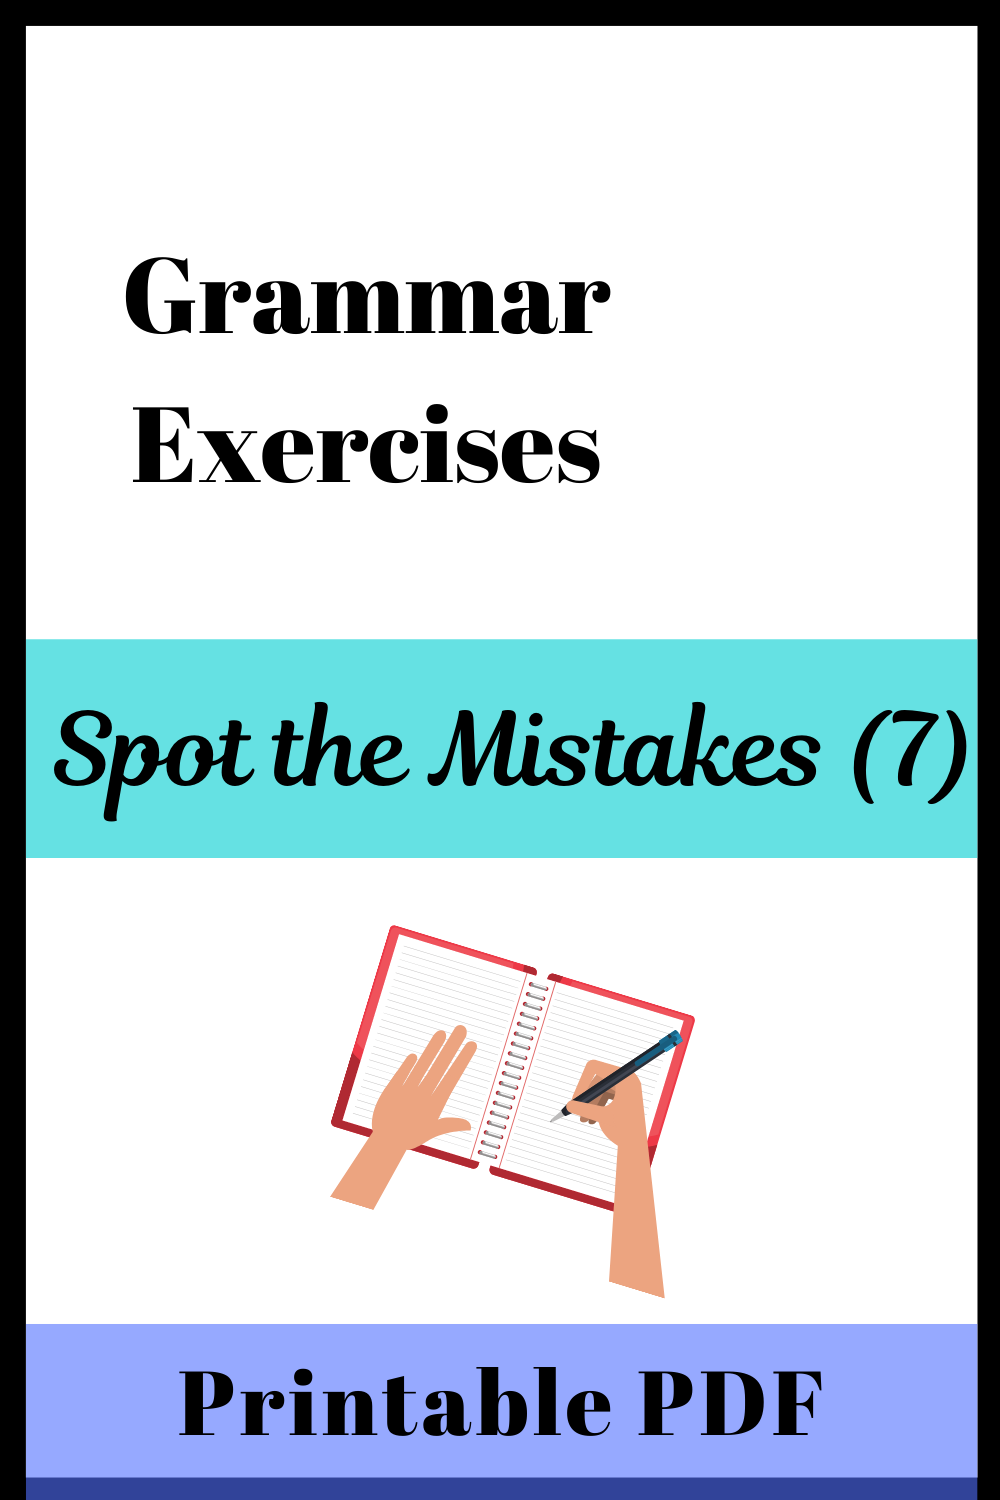 Find The Grammar Mistakes 7 With Printable Pdf Learn English Grammar Exercises Grammar [ 1500 x 1000 Pixel ]